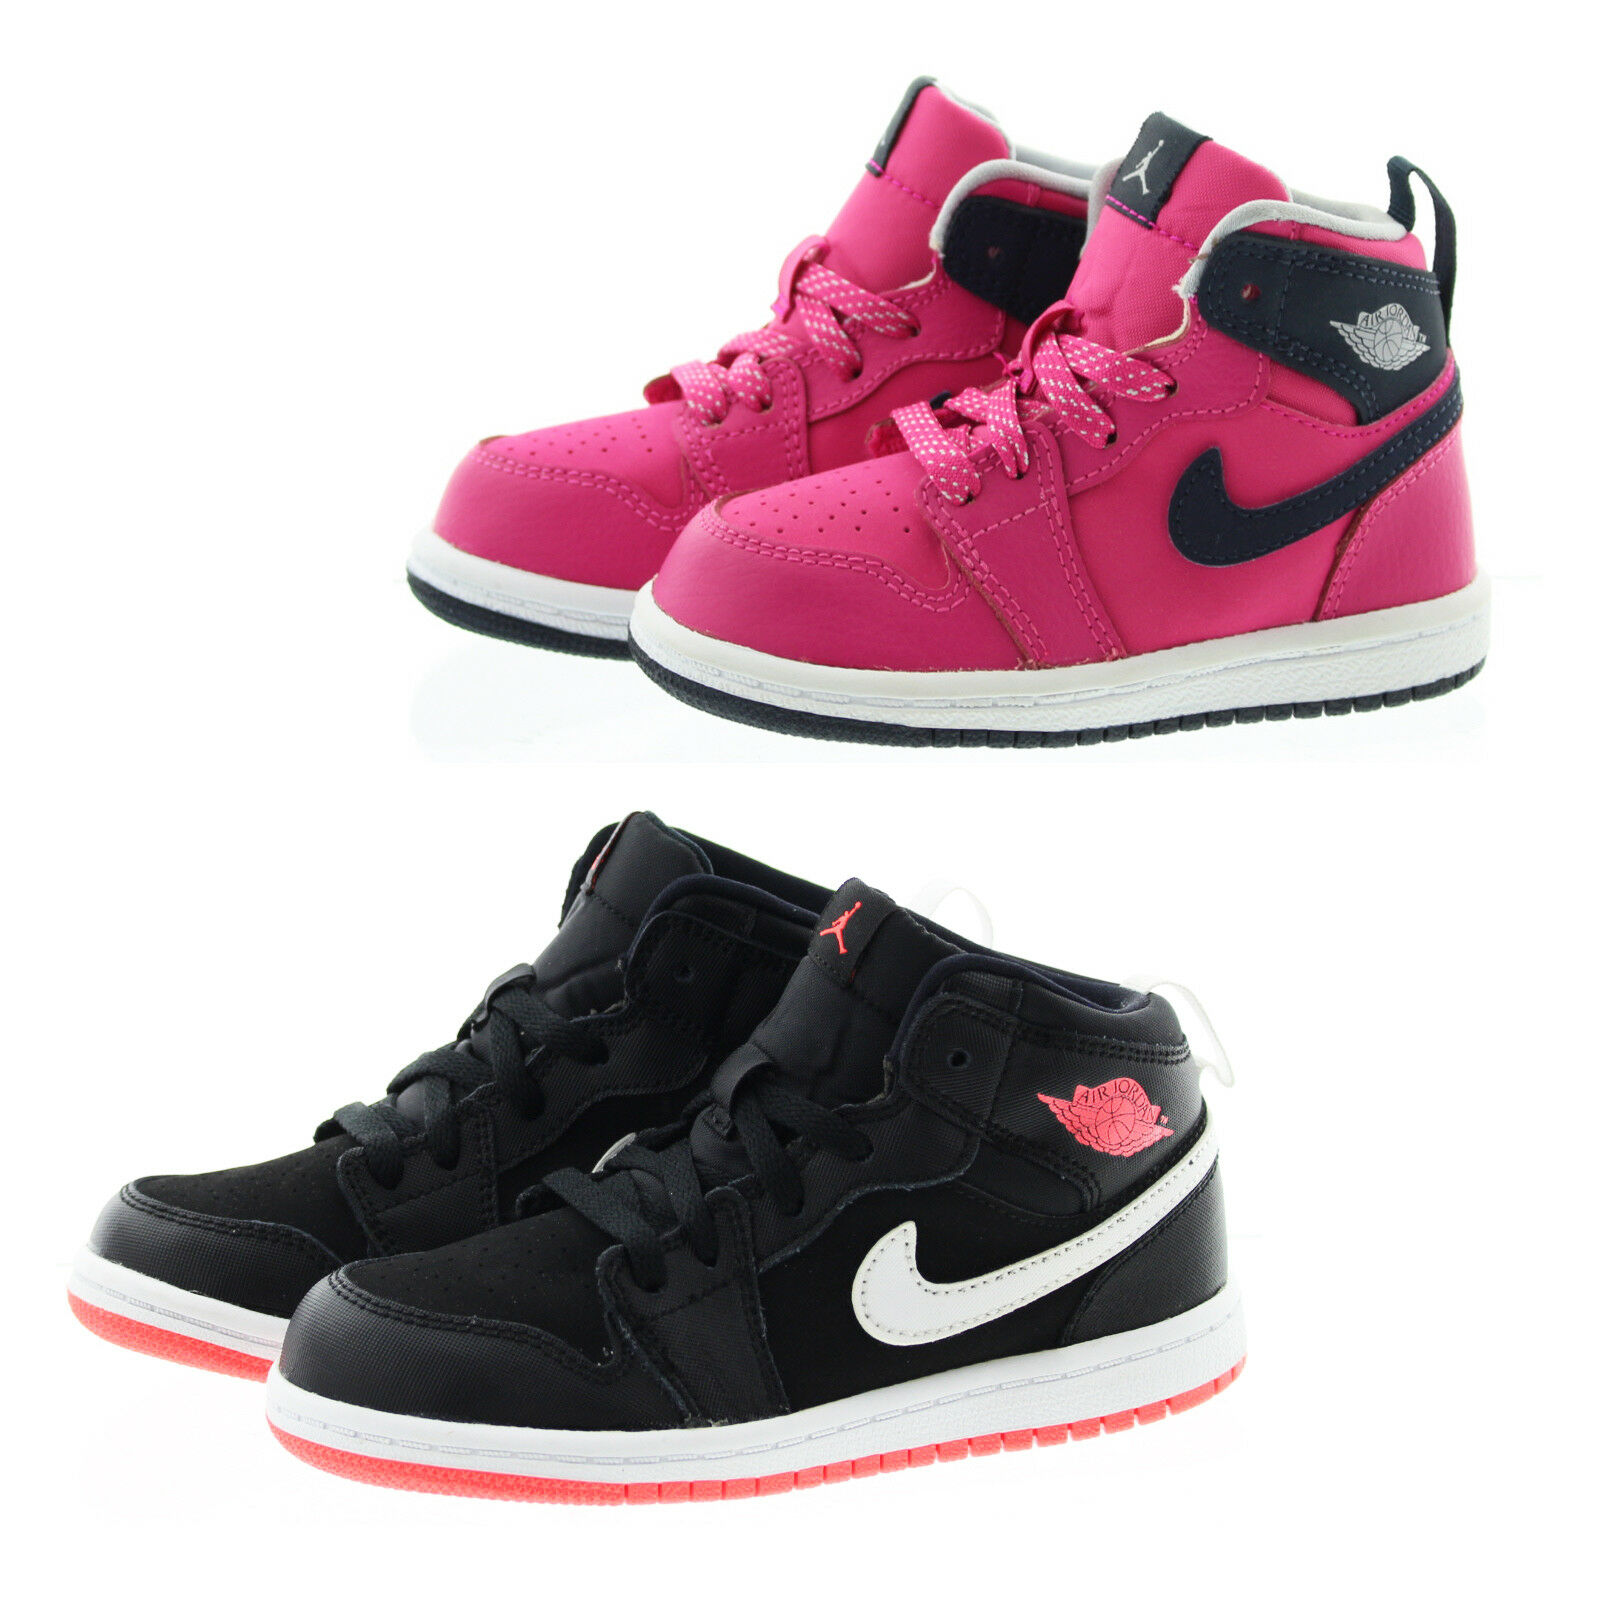 Nike 705324 Toddler Child Air Jordan 1 Retro High GT Athletic Basketball Shoes